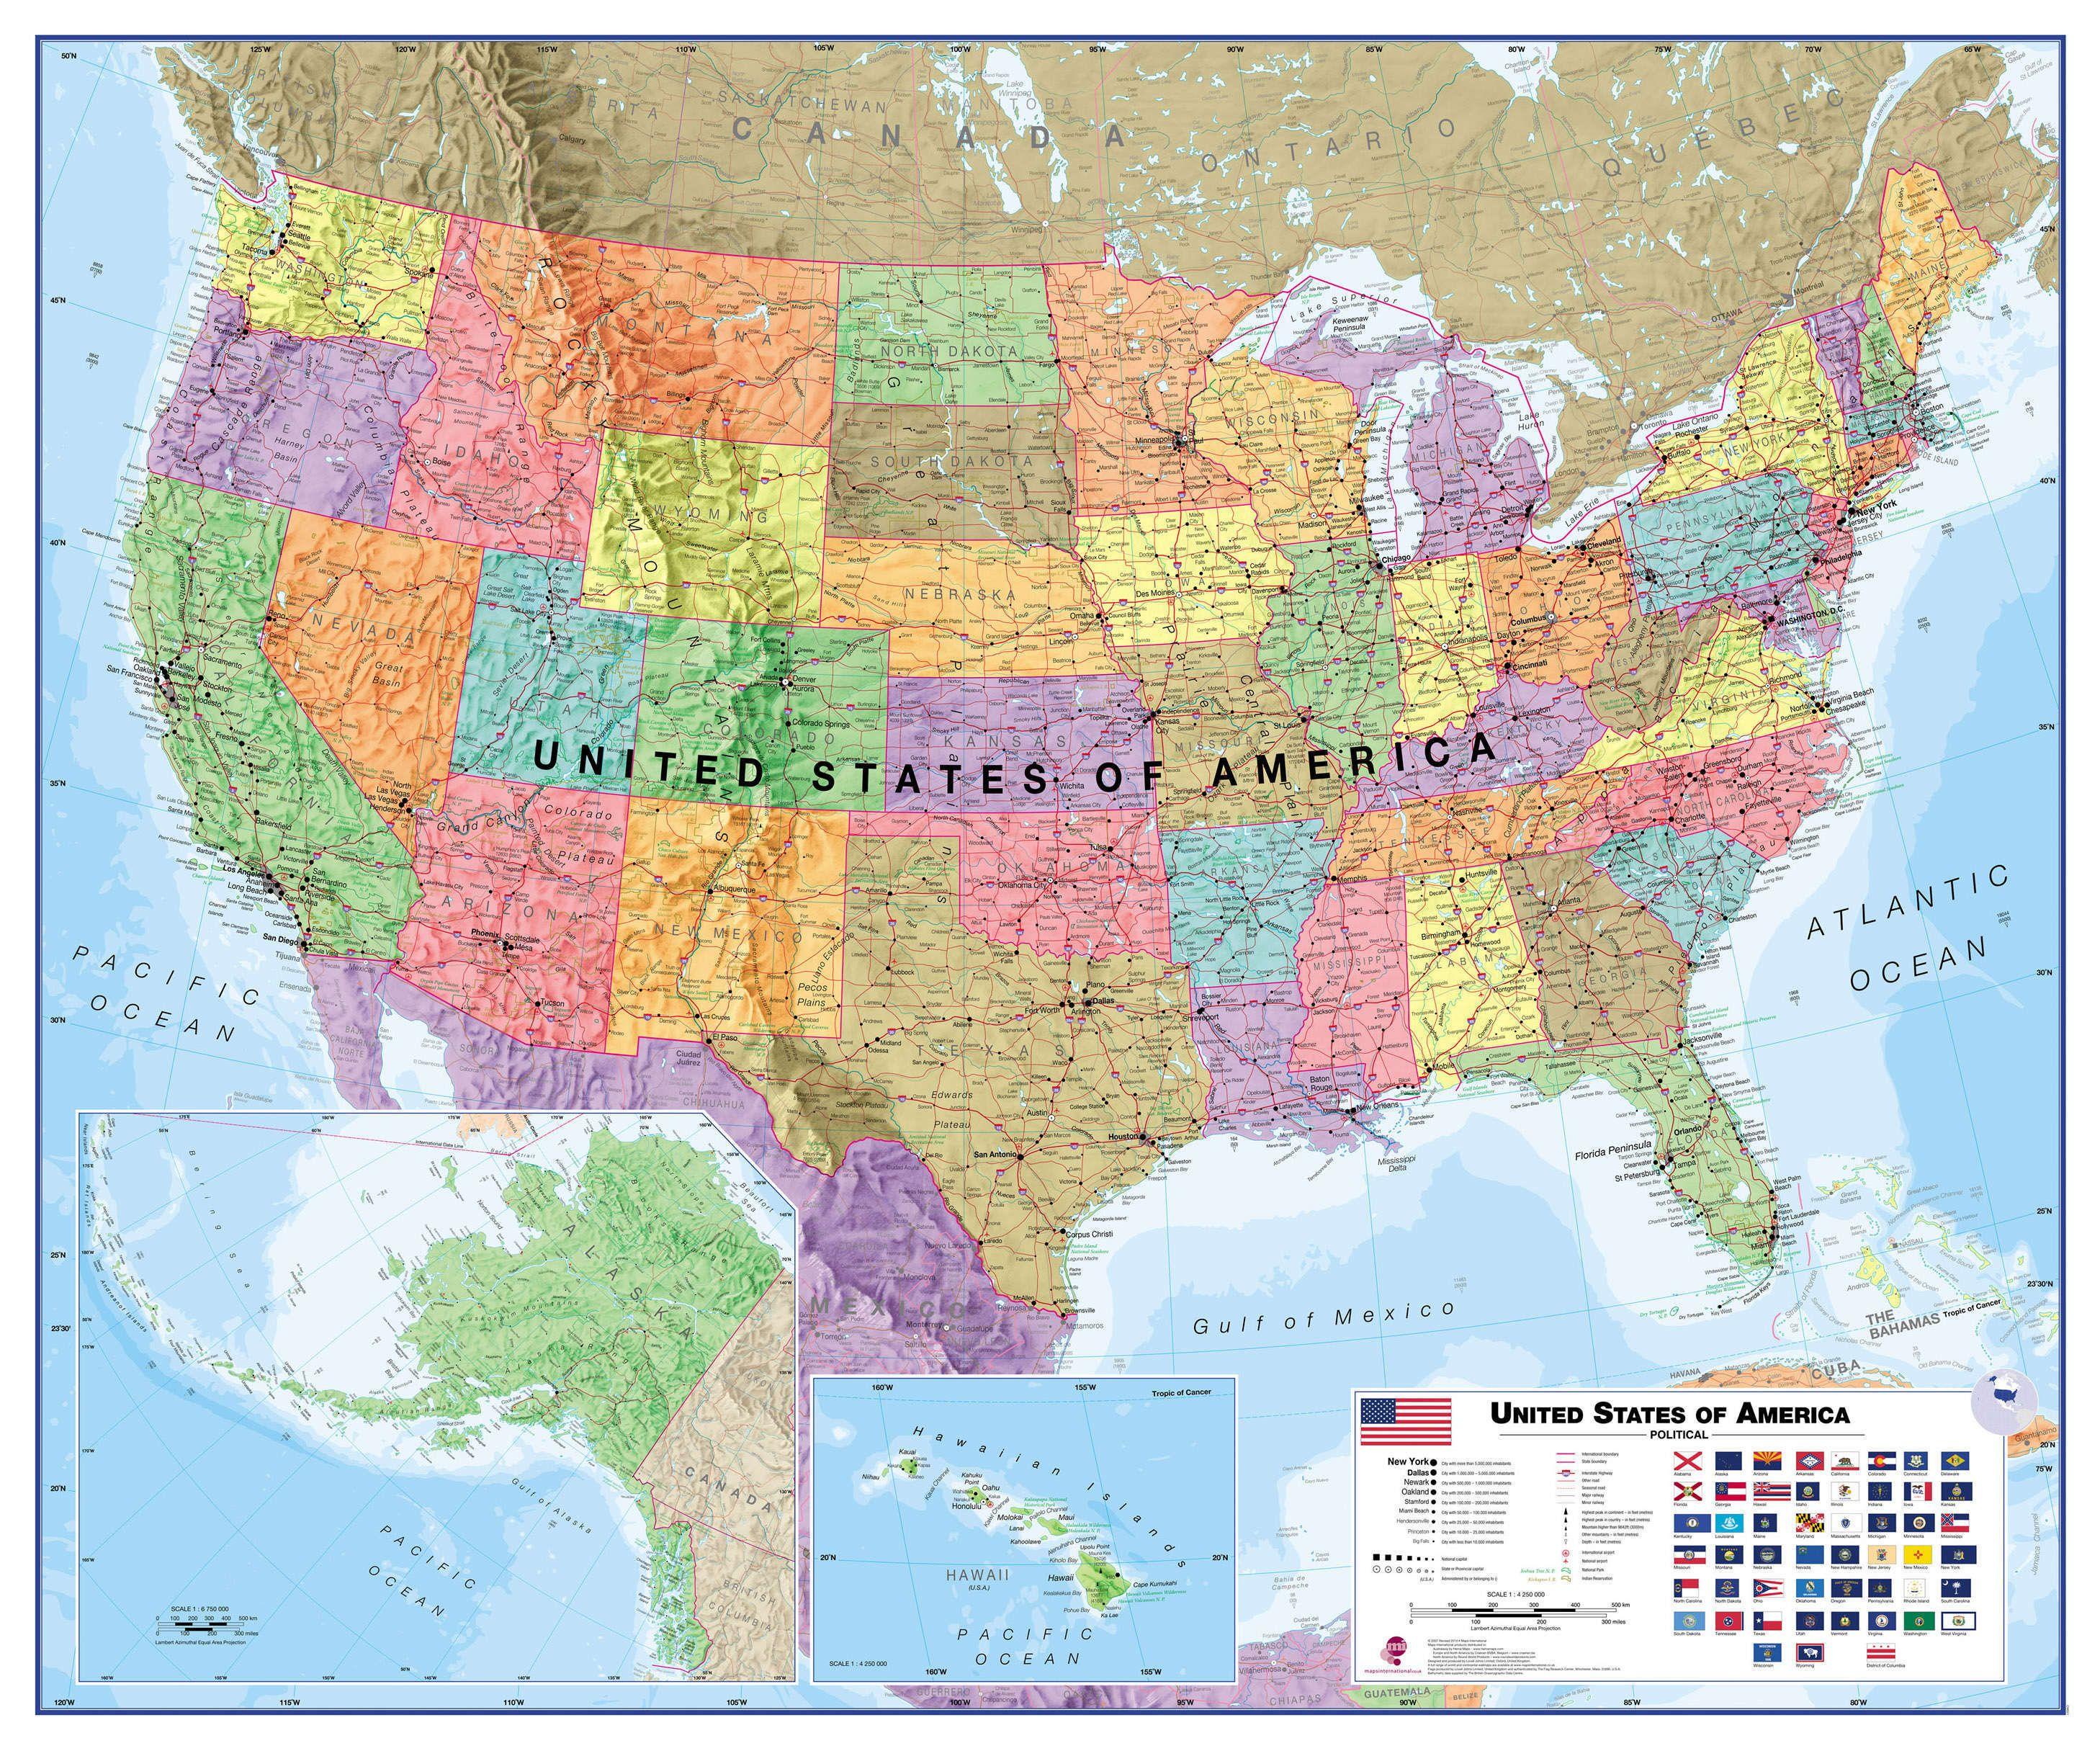 Political USA Wall Map on usa elevation map, usa diplomatic map, usa climate map, usa road map, usa education map, missouri bellwether, usa historic map, usa map labeled, swing state, usa map projection, usa city map, solid south, usa weather map, usa outline map, purple america, jesusland map, usa map with states, libertarian party, usa map with cities and towns, usa geological map, usa thematic map, republican and democratic states 2012 map, usa population density map, usa trade map, usa history map, usa topographical map,